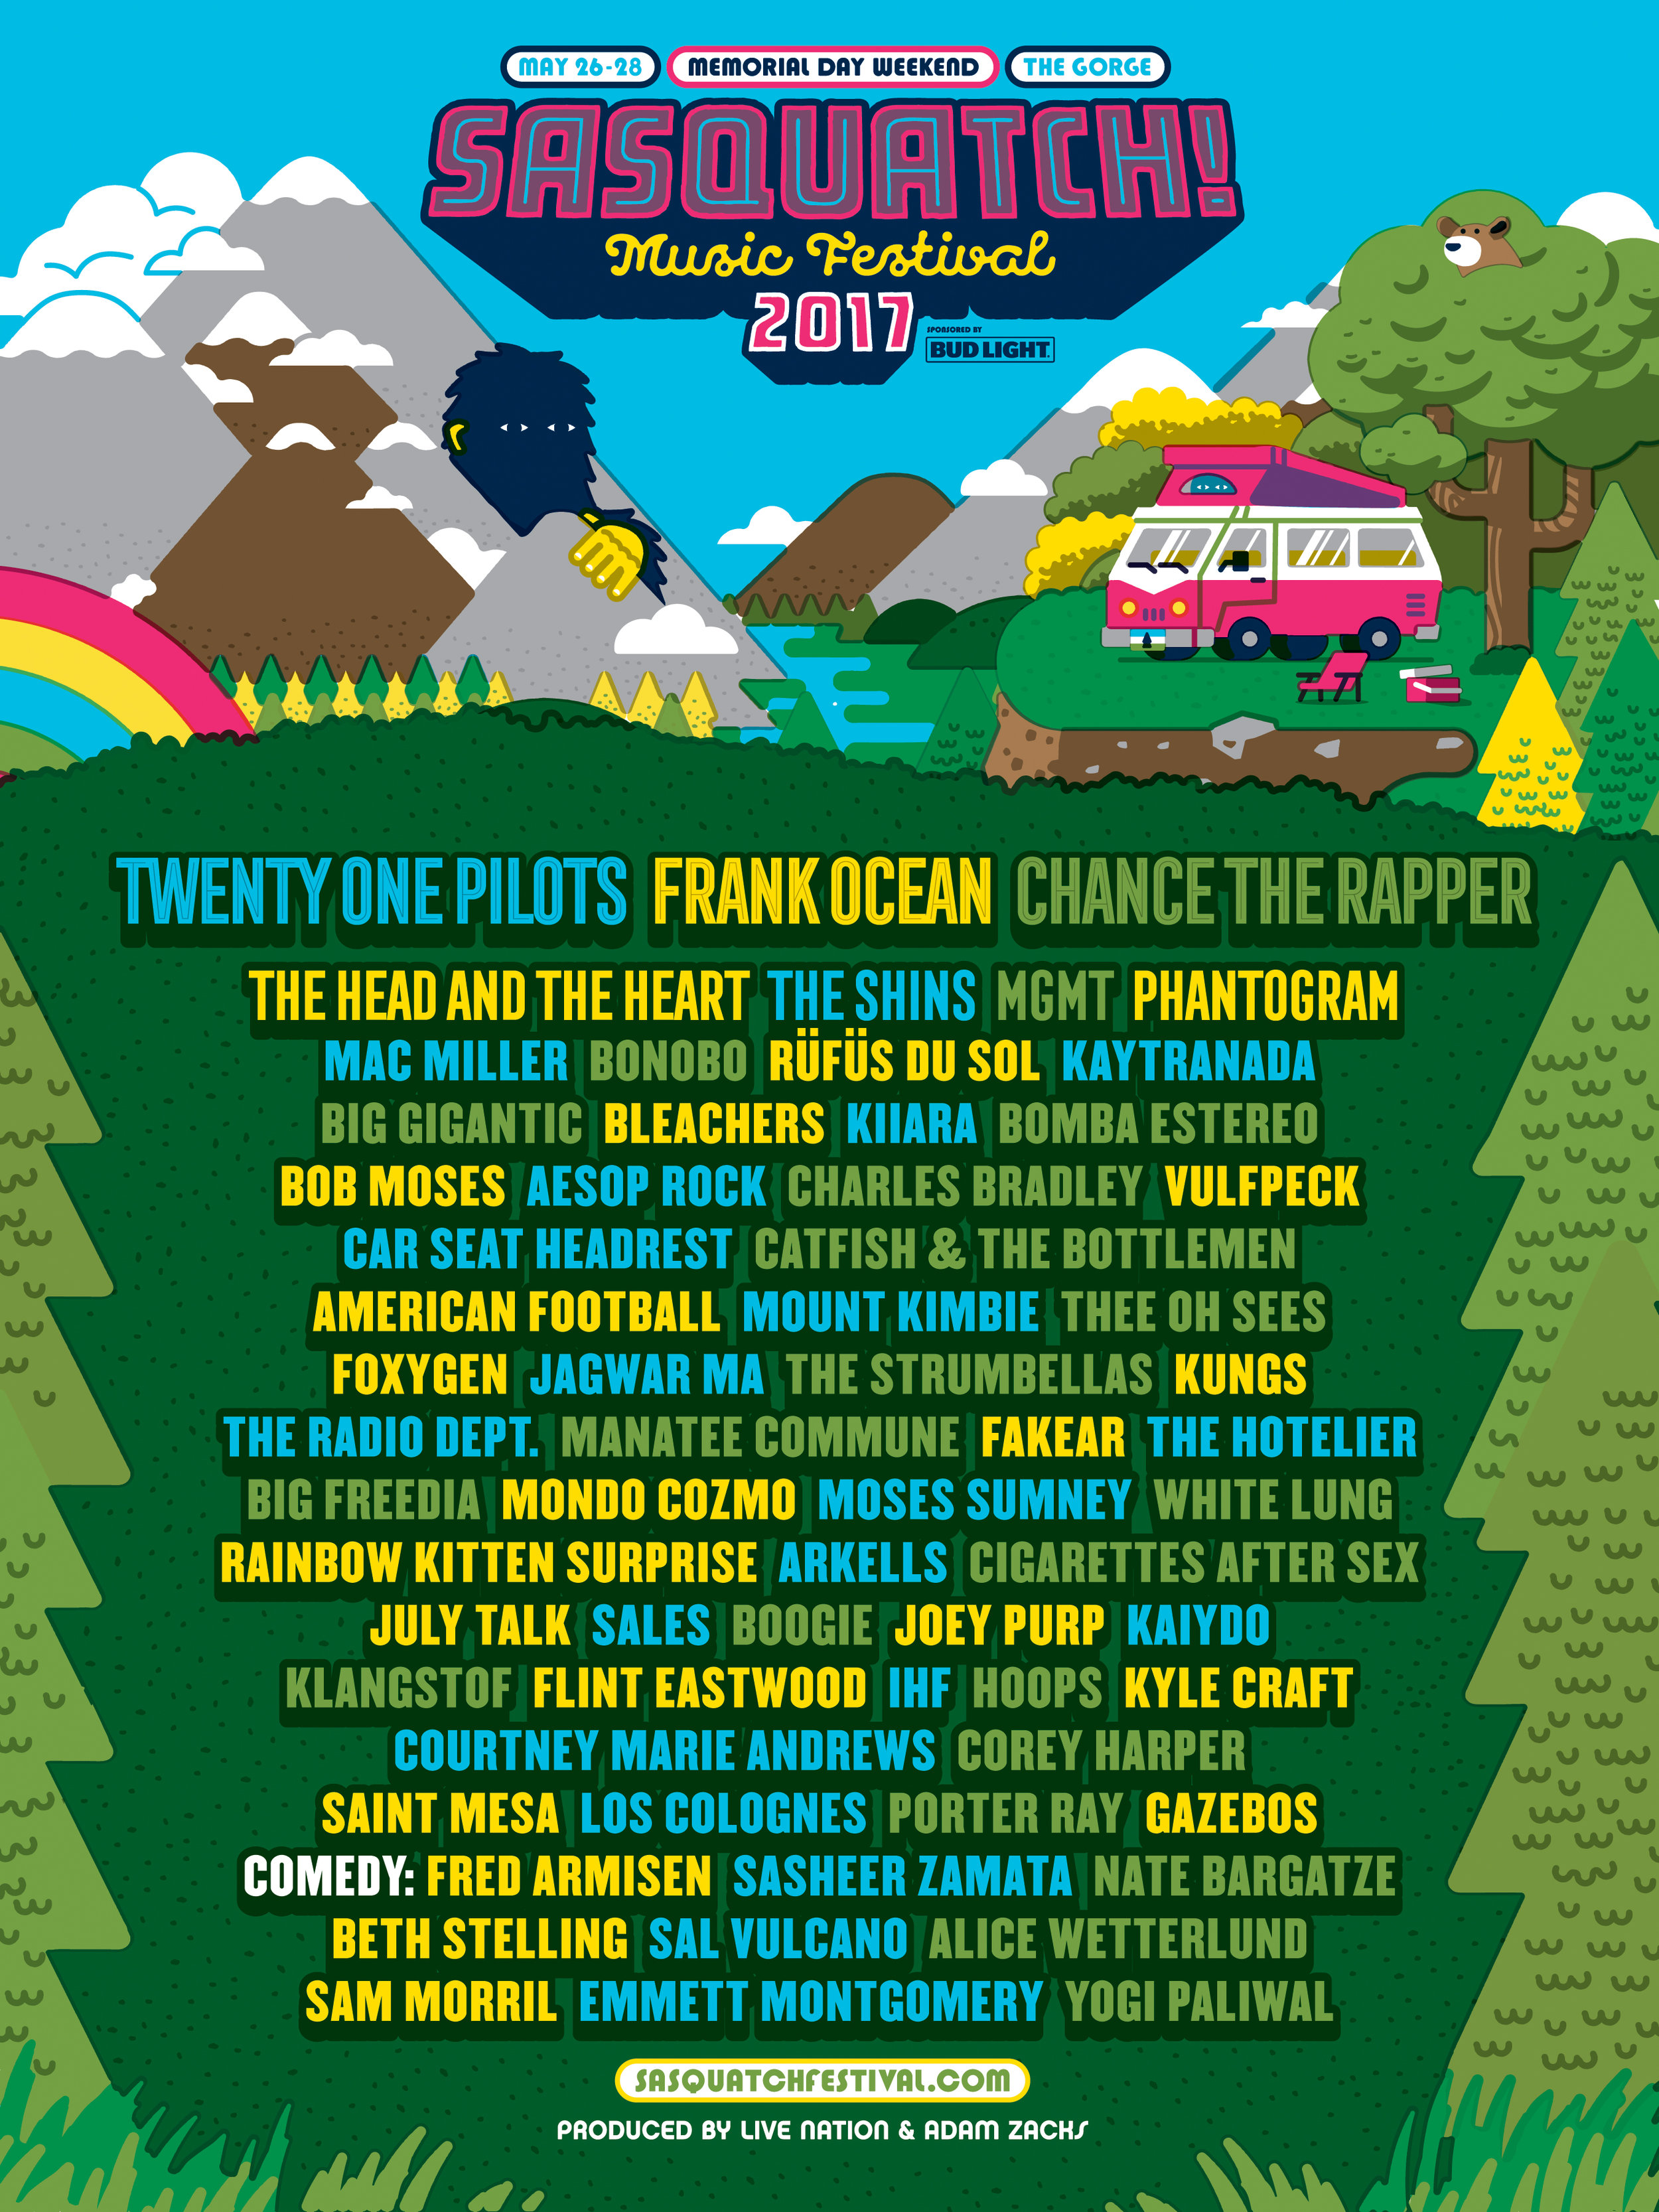 MGMT will be performing at the Sasquatch Music Festival, May 26-28.For tickets and more details go to:https://www.sasquatchfestival.com